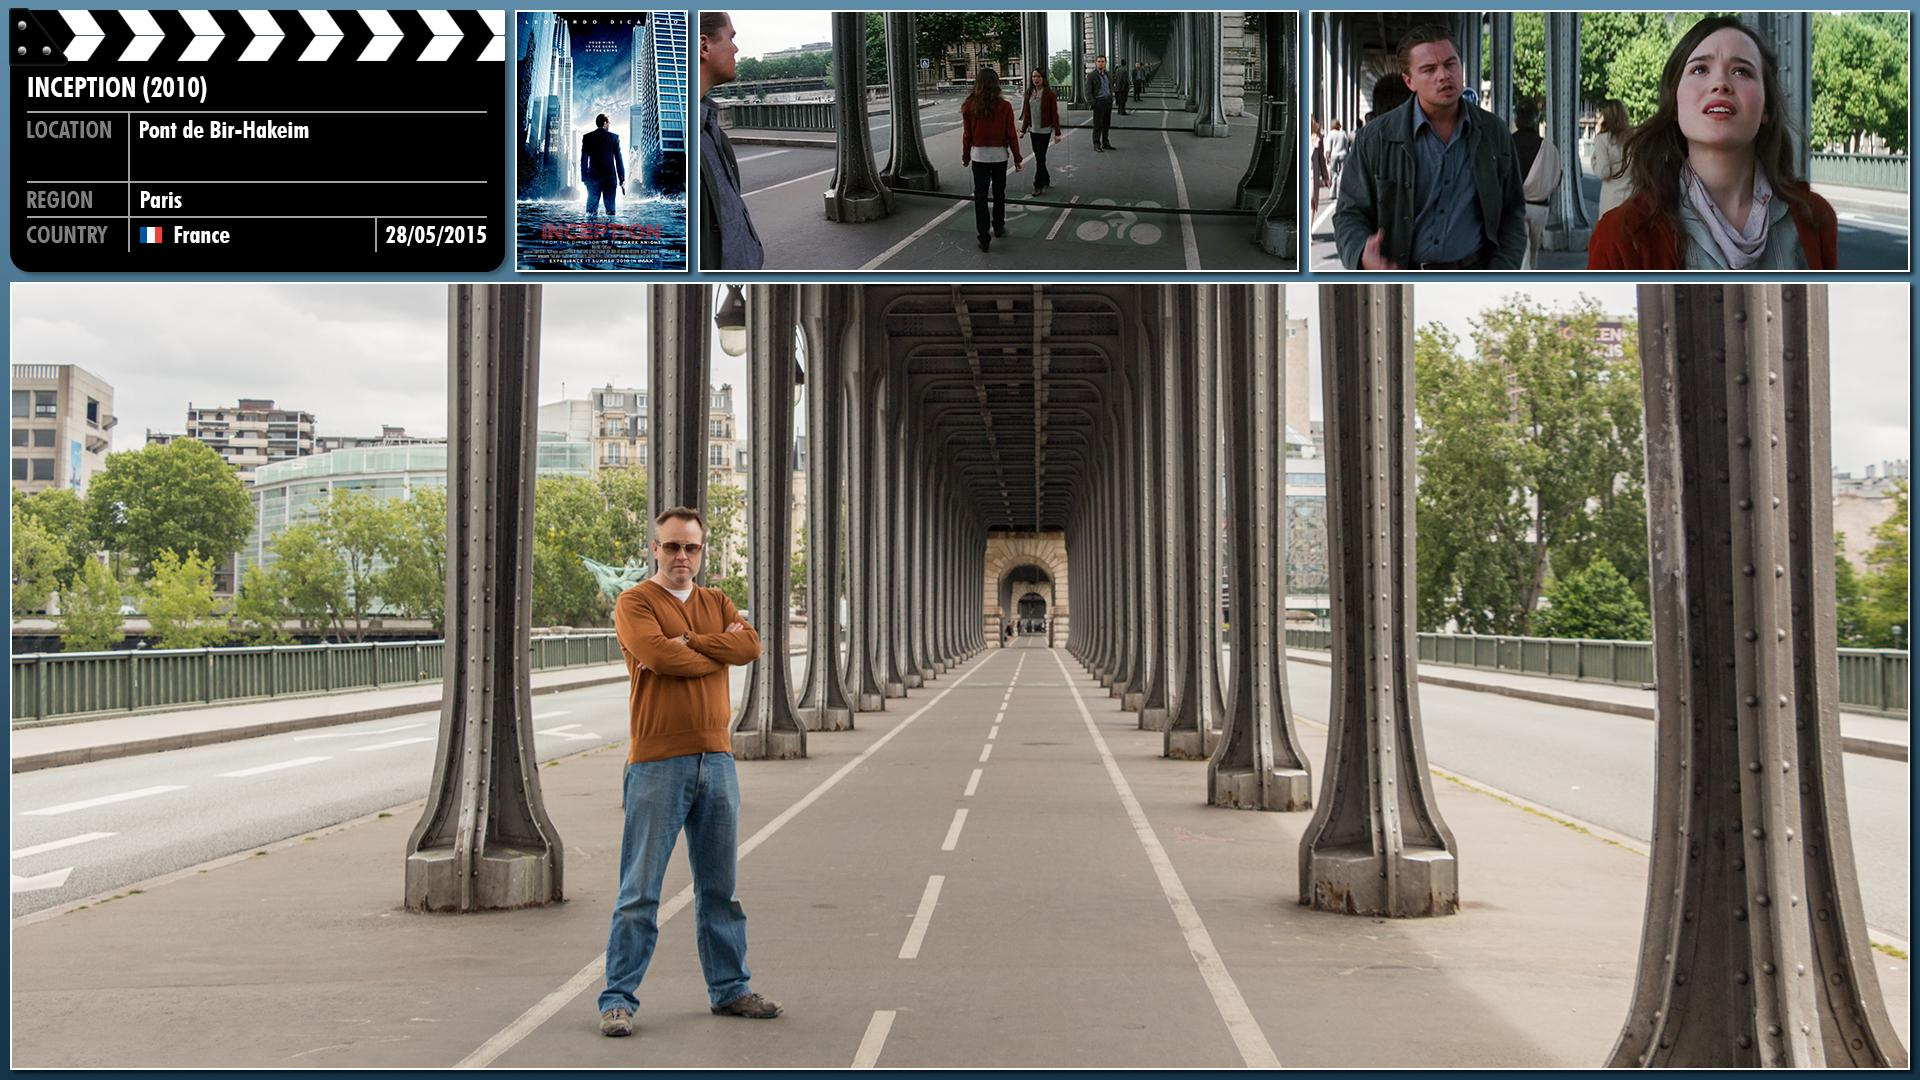 Filming location photo for Inception (2010) 1 of 1